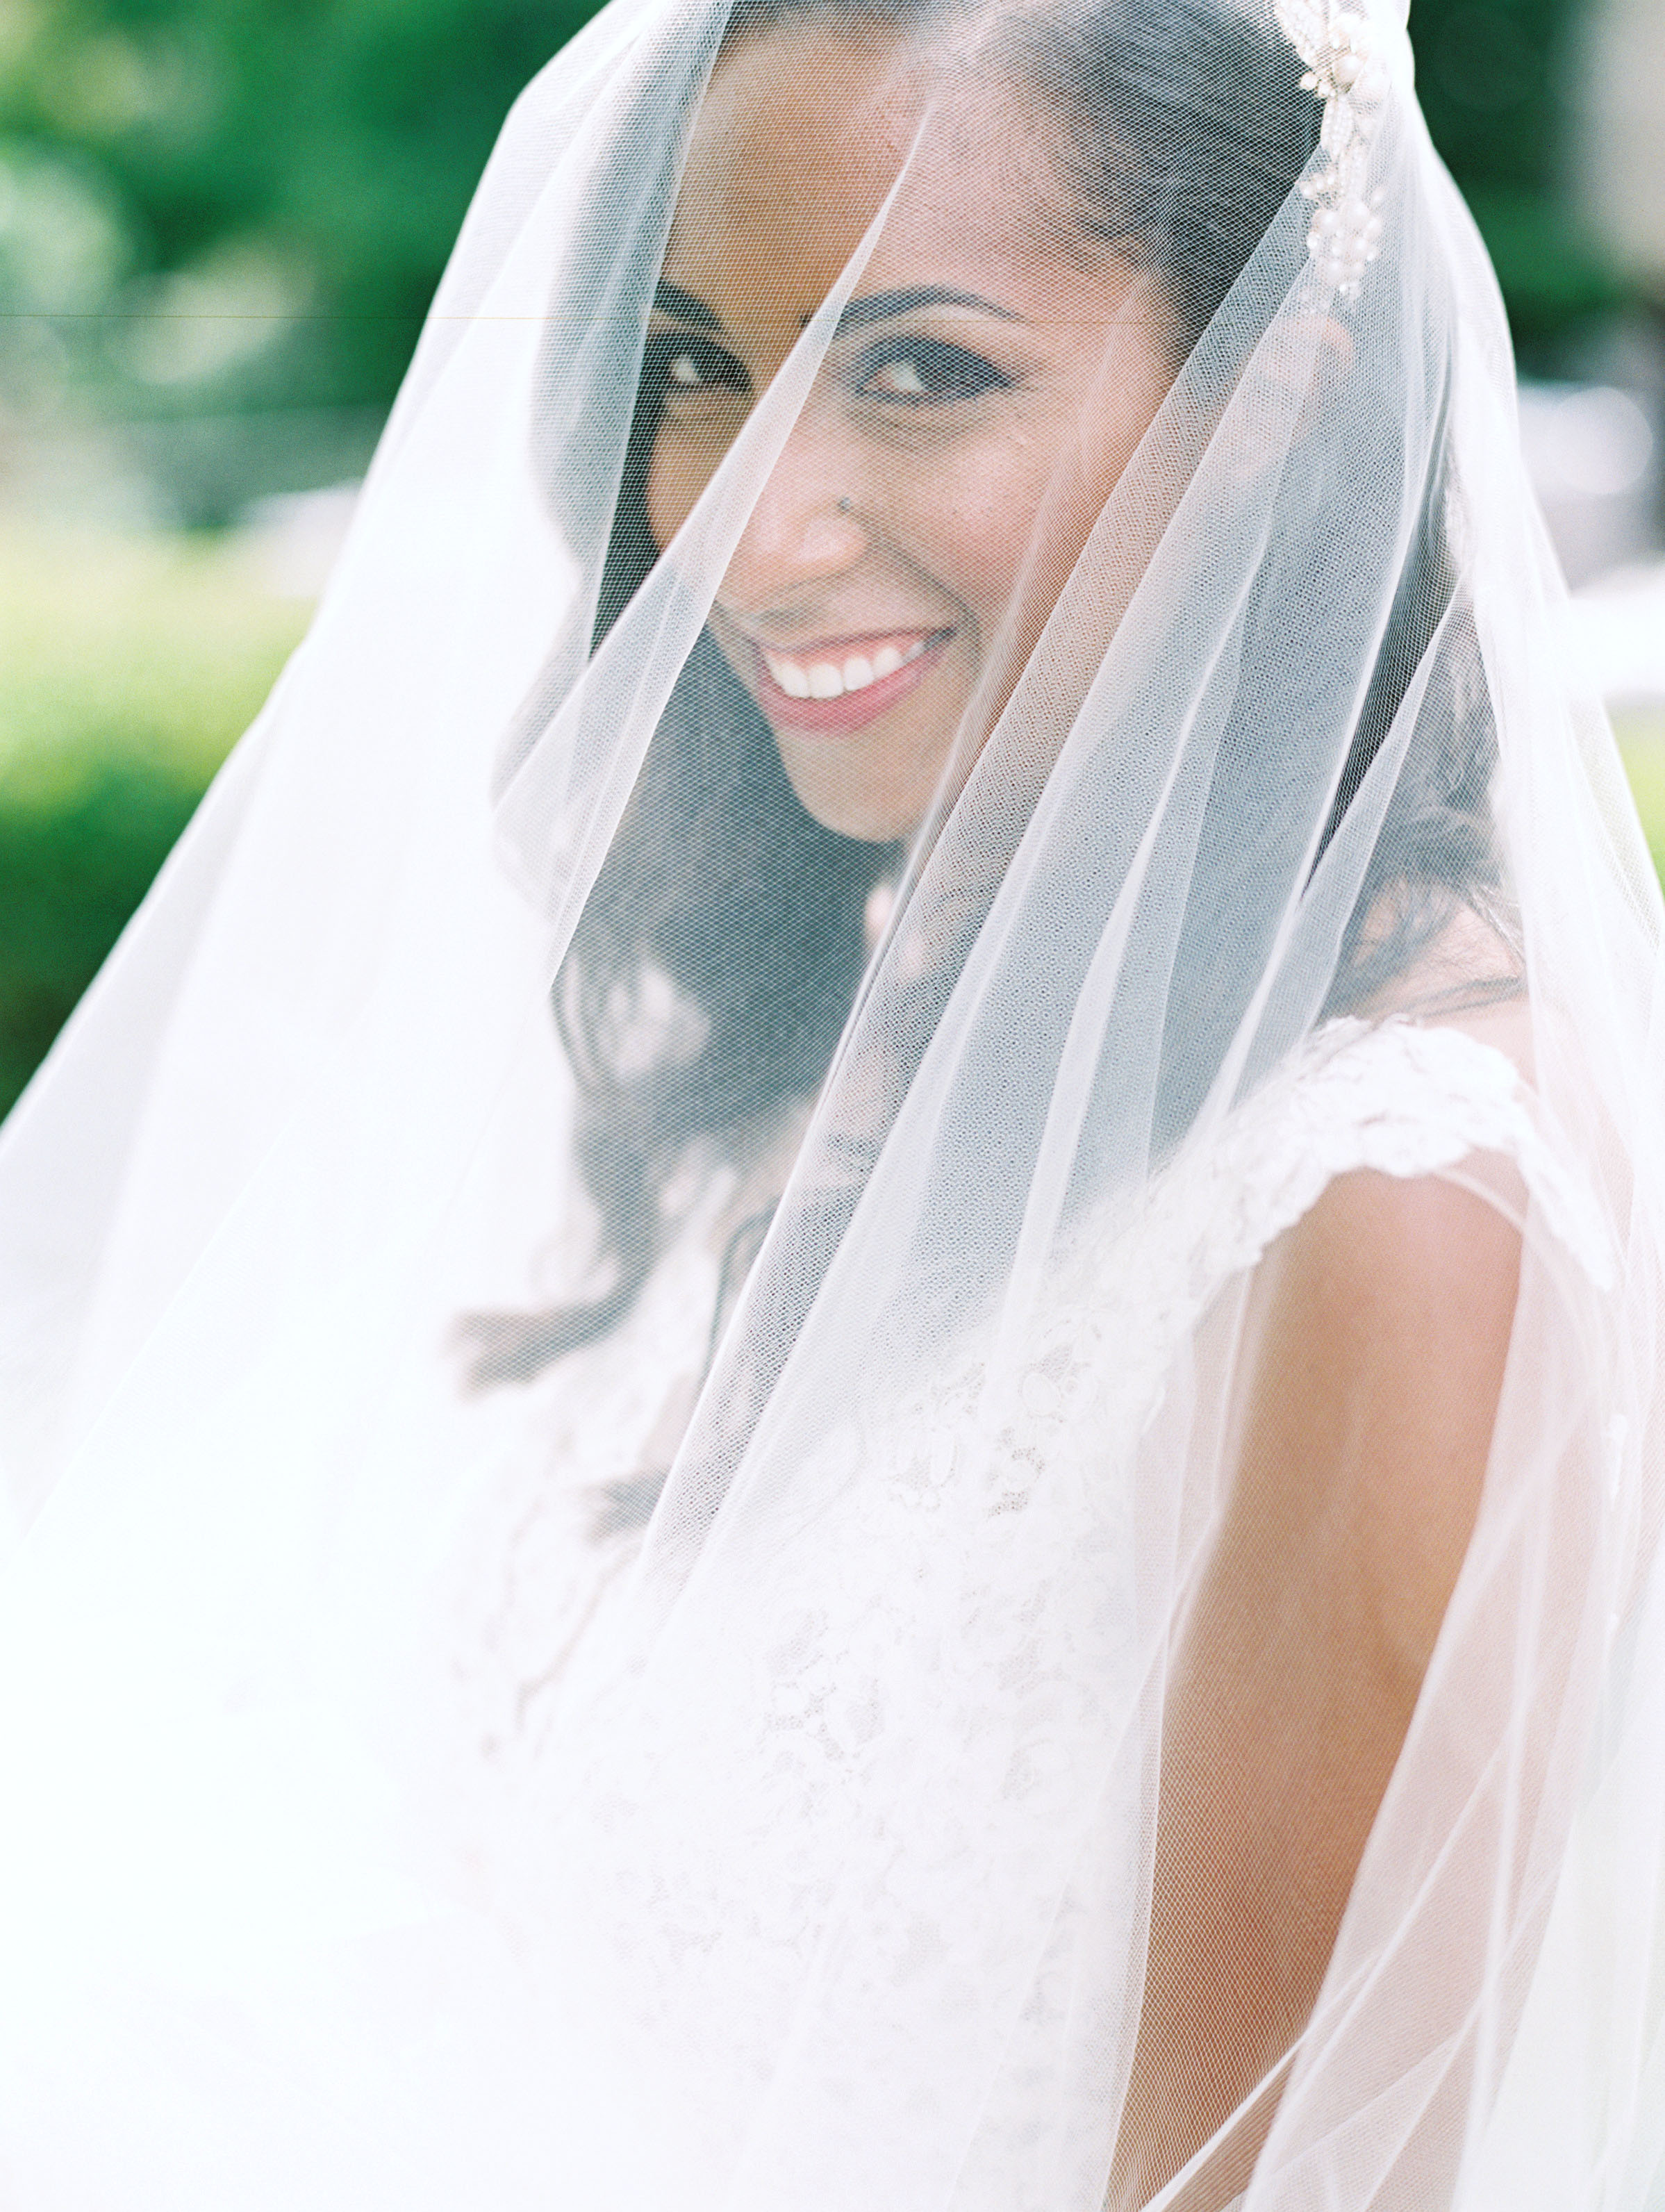 When Should You Remove Your Veil on the Wedding Day?